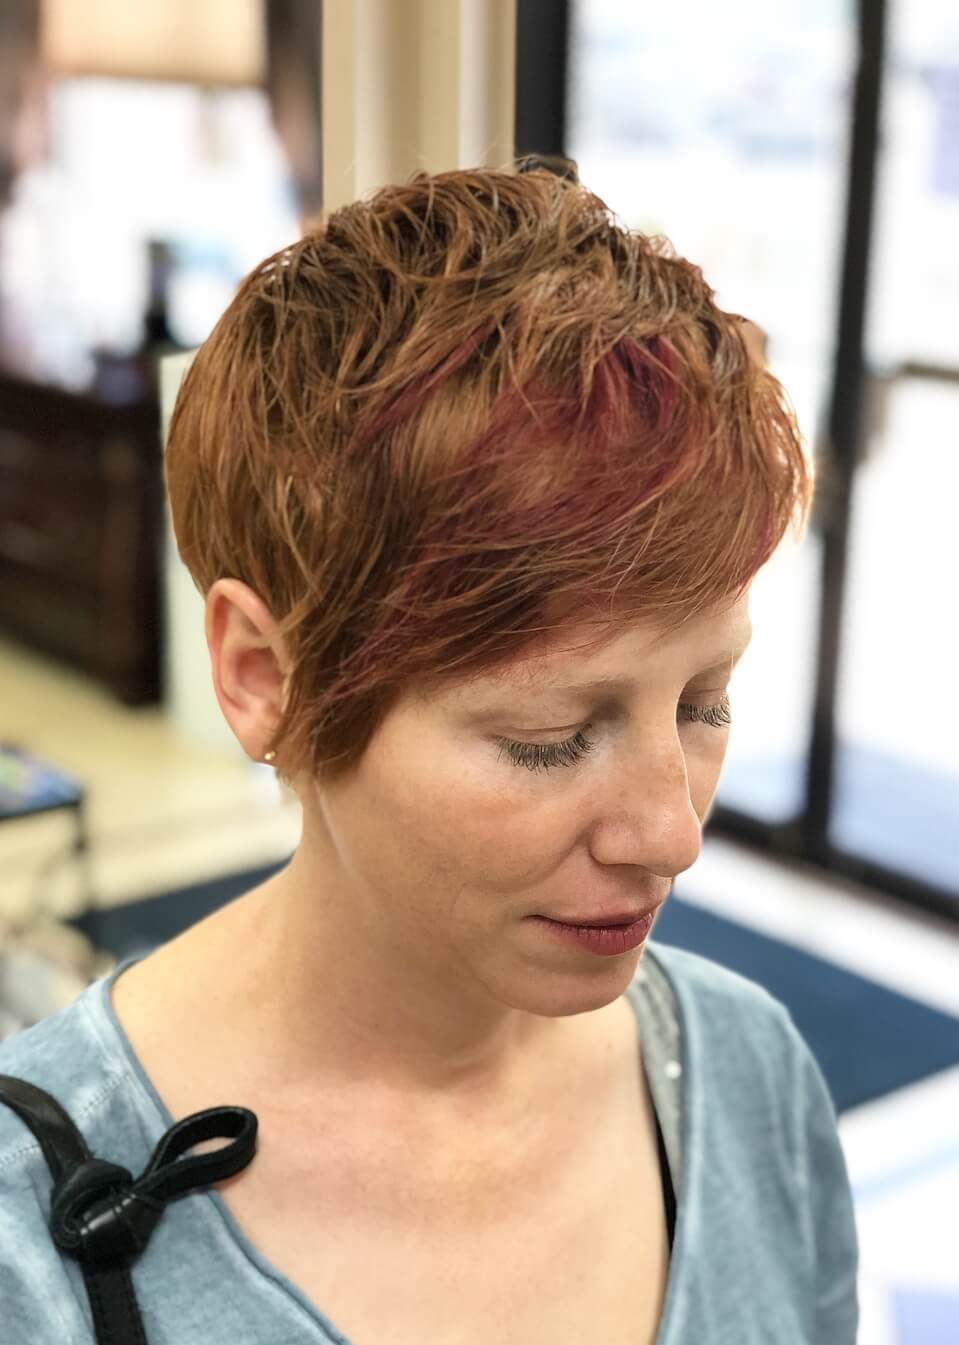 https://zhurnal-lady.com/wp-content/uploads/2019/12/shaggy-hairstyles-for-women-over-50-35.jpg